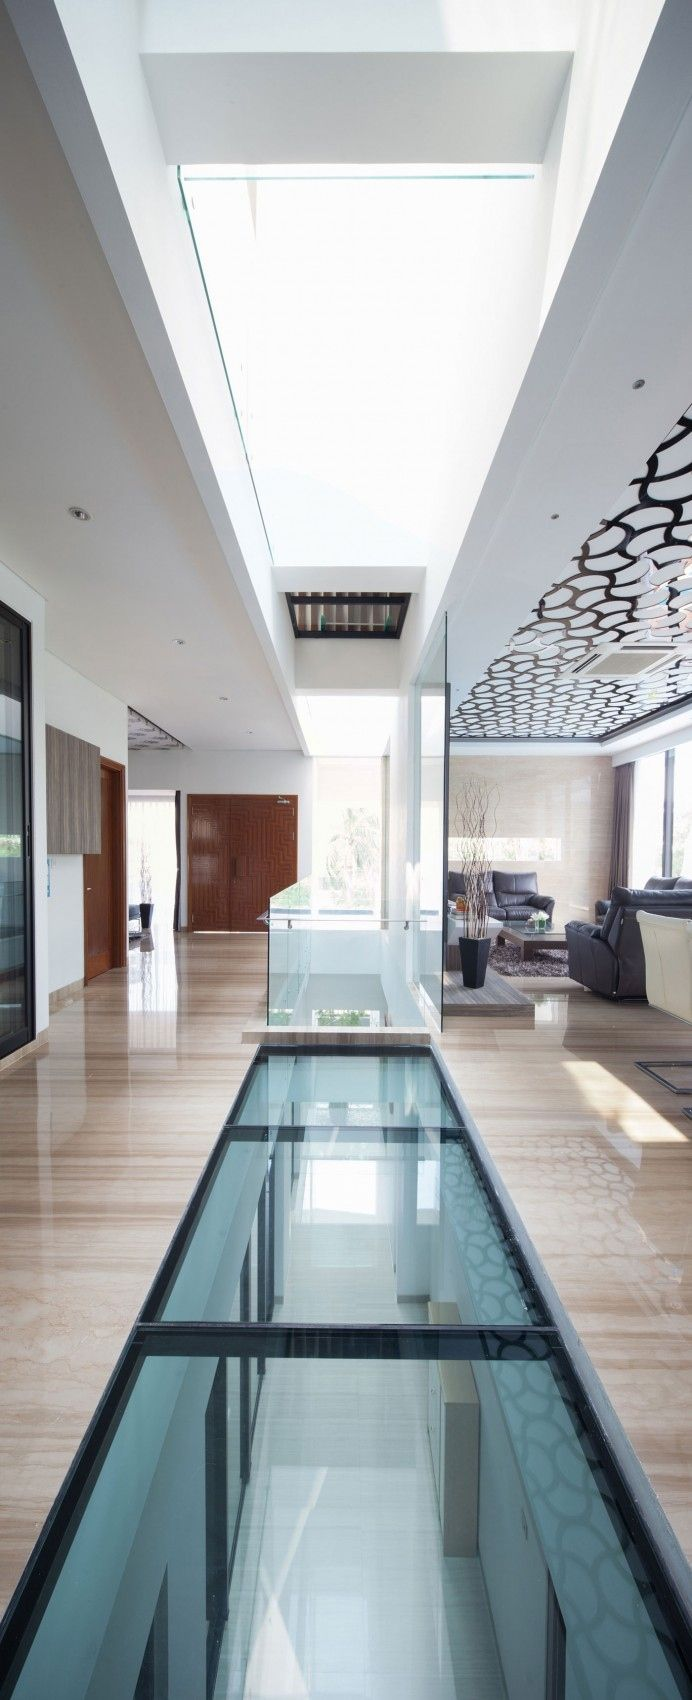 House with Creative Ceilings and Glass Floors | Pinterest | Corridor ...